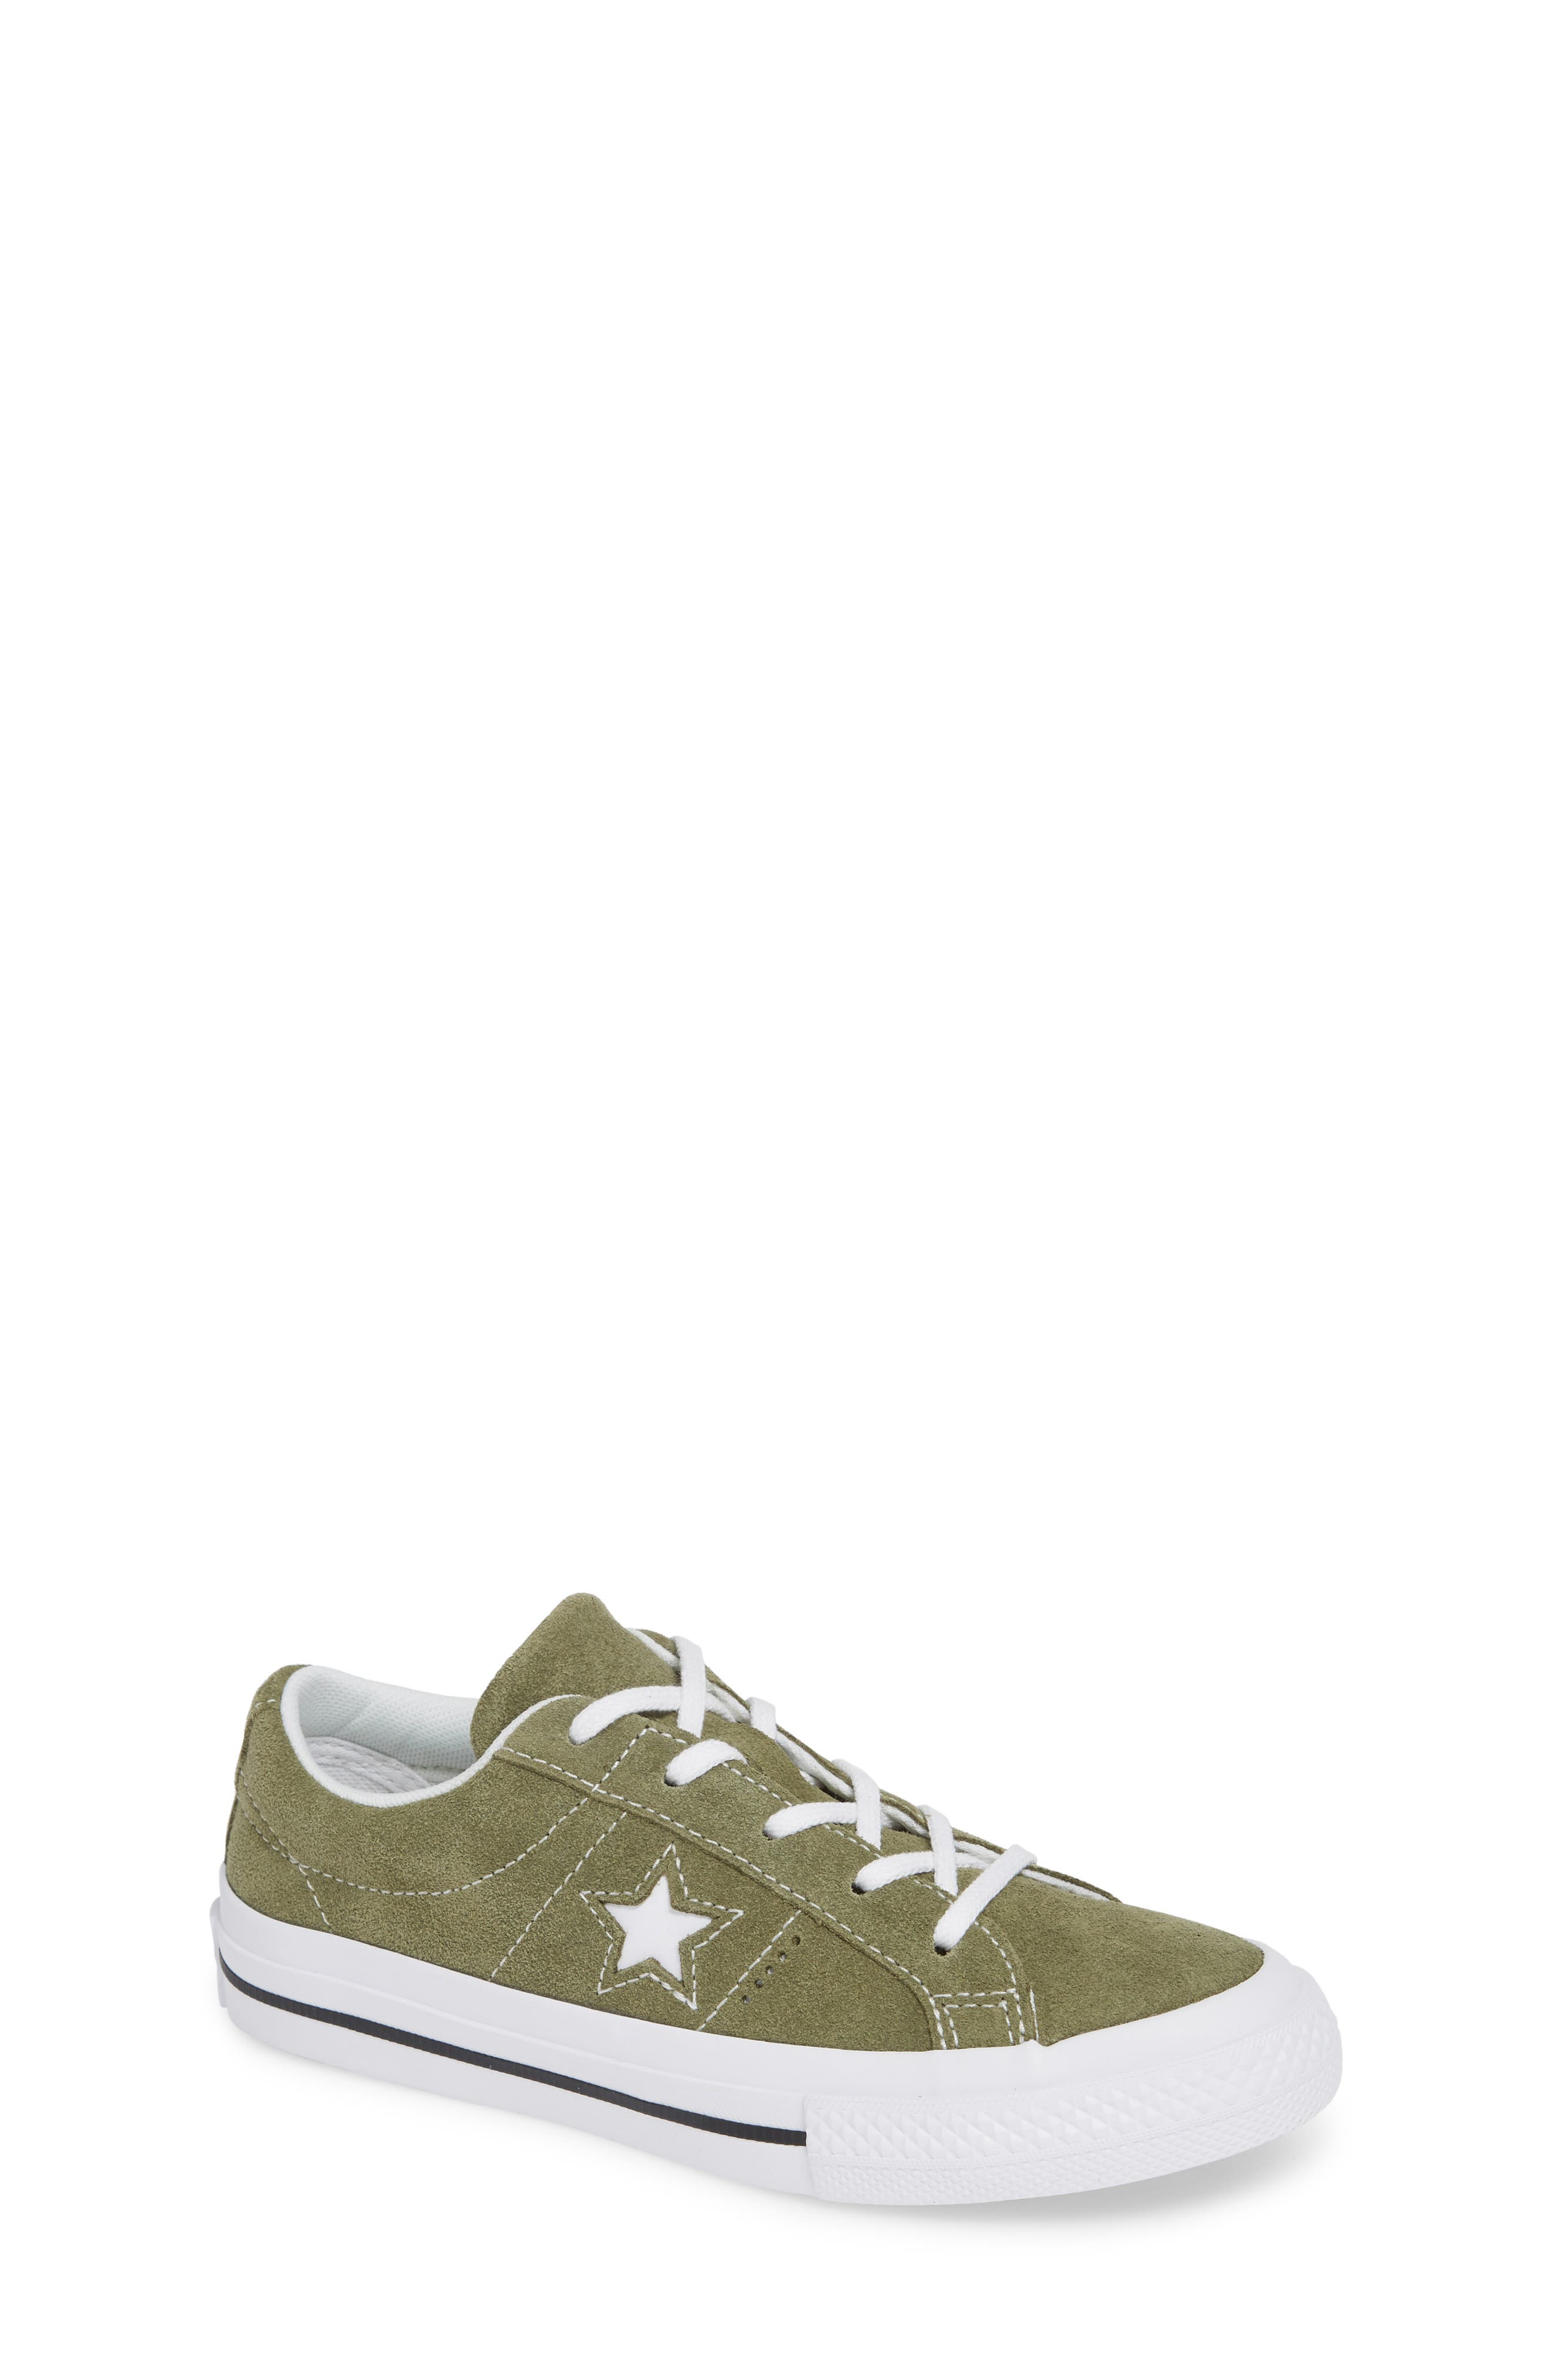 One Star Vintage Suede Low Top Sneaker,                         Main,                         color, 322